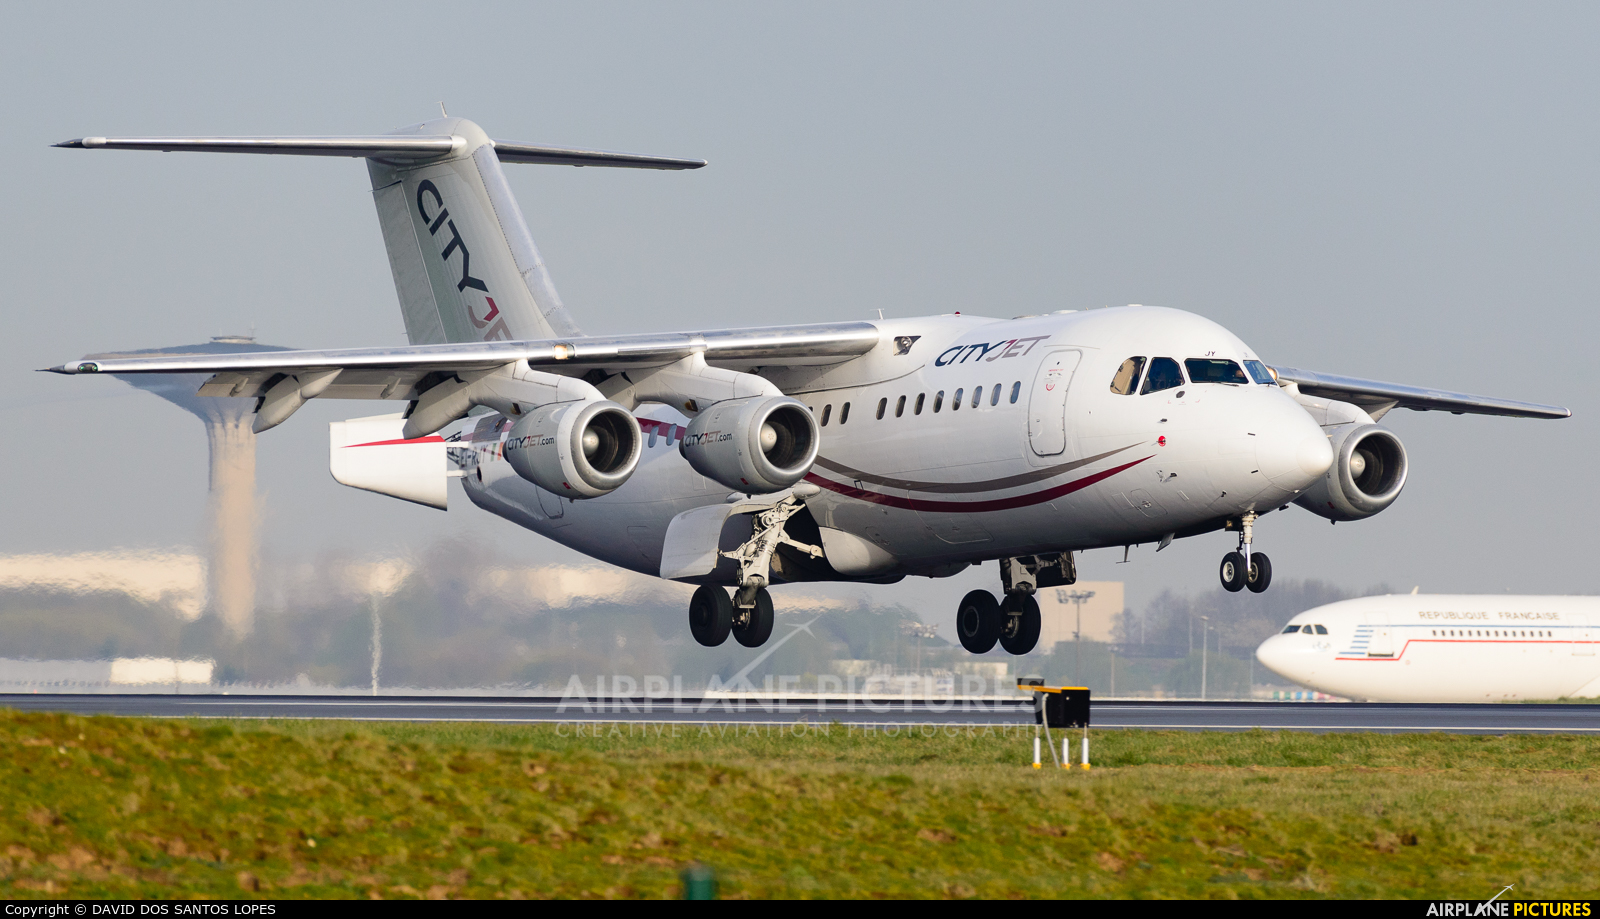 CityJet EI-RJY aircraft at Paris - Charles de Gaulle